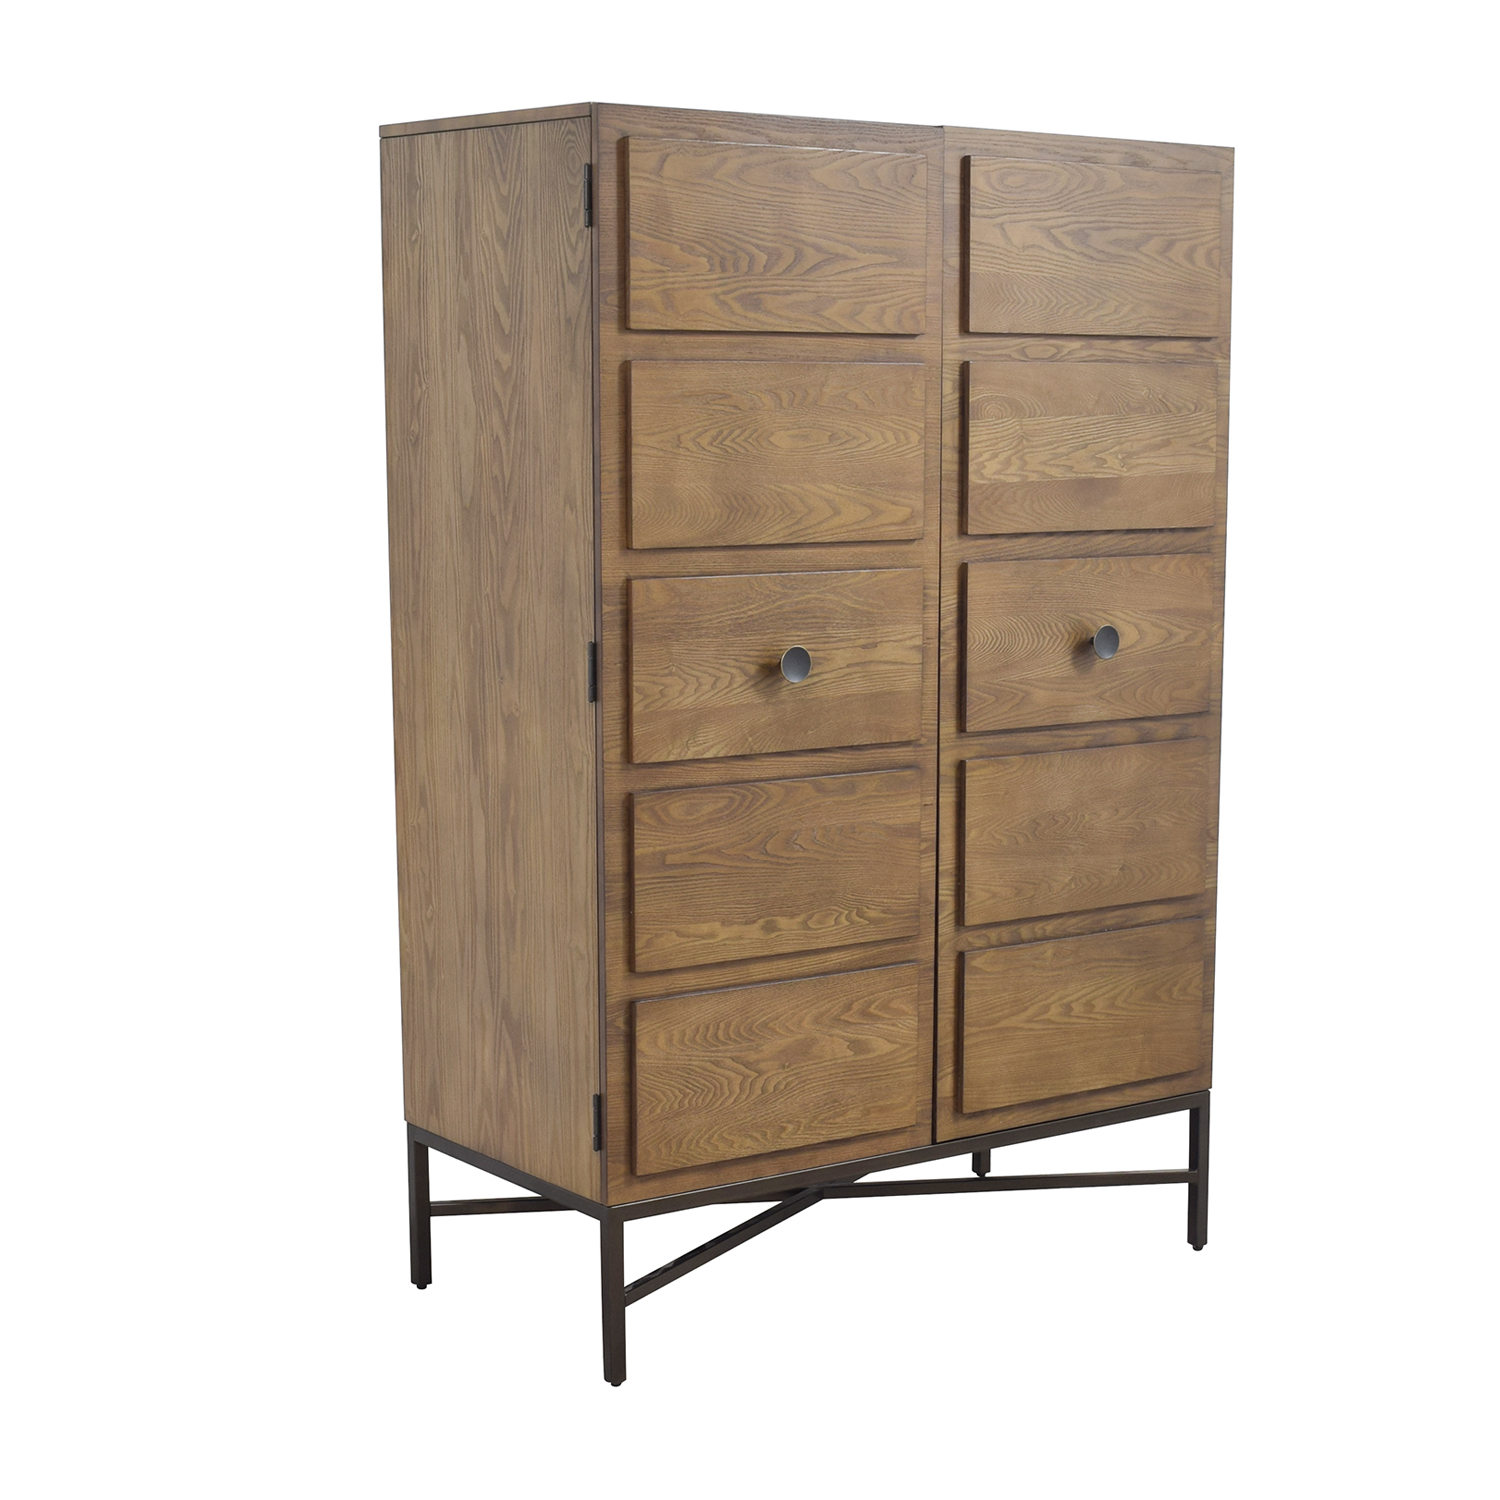 41% OFF - West Elm West Elm Paneled Armoire / Storage